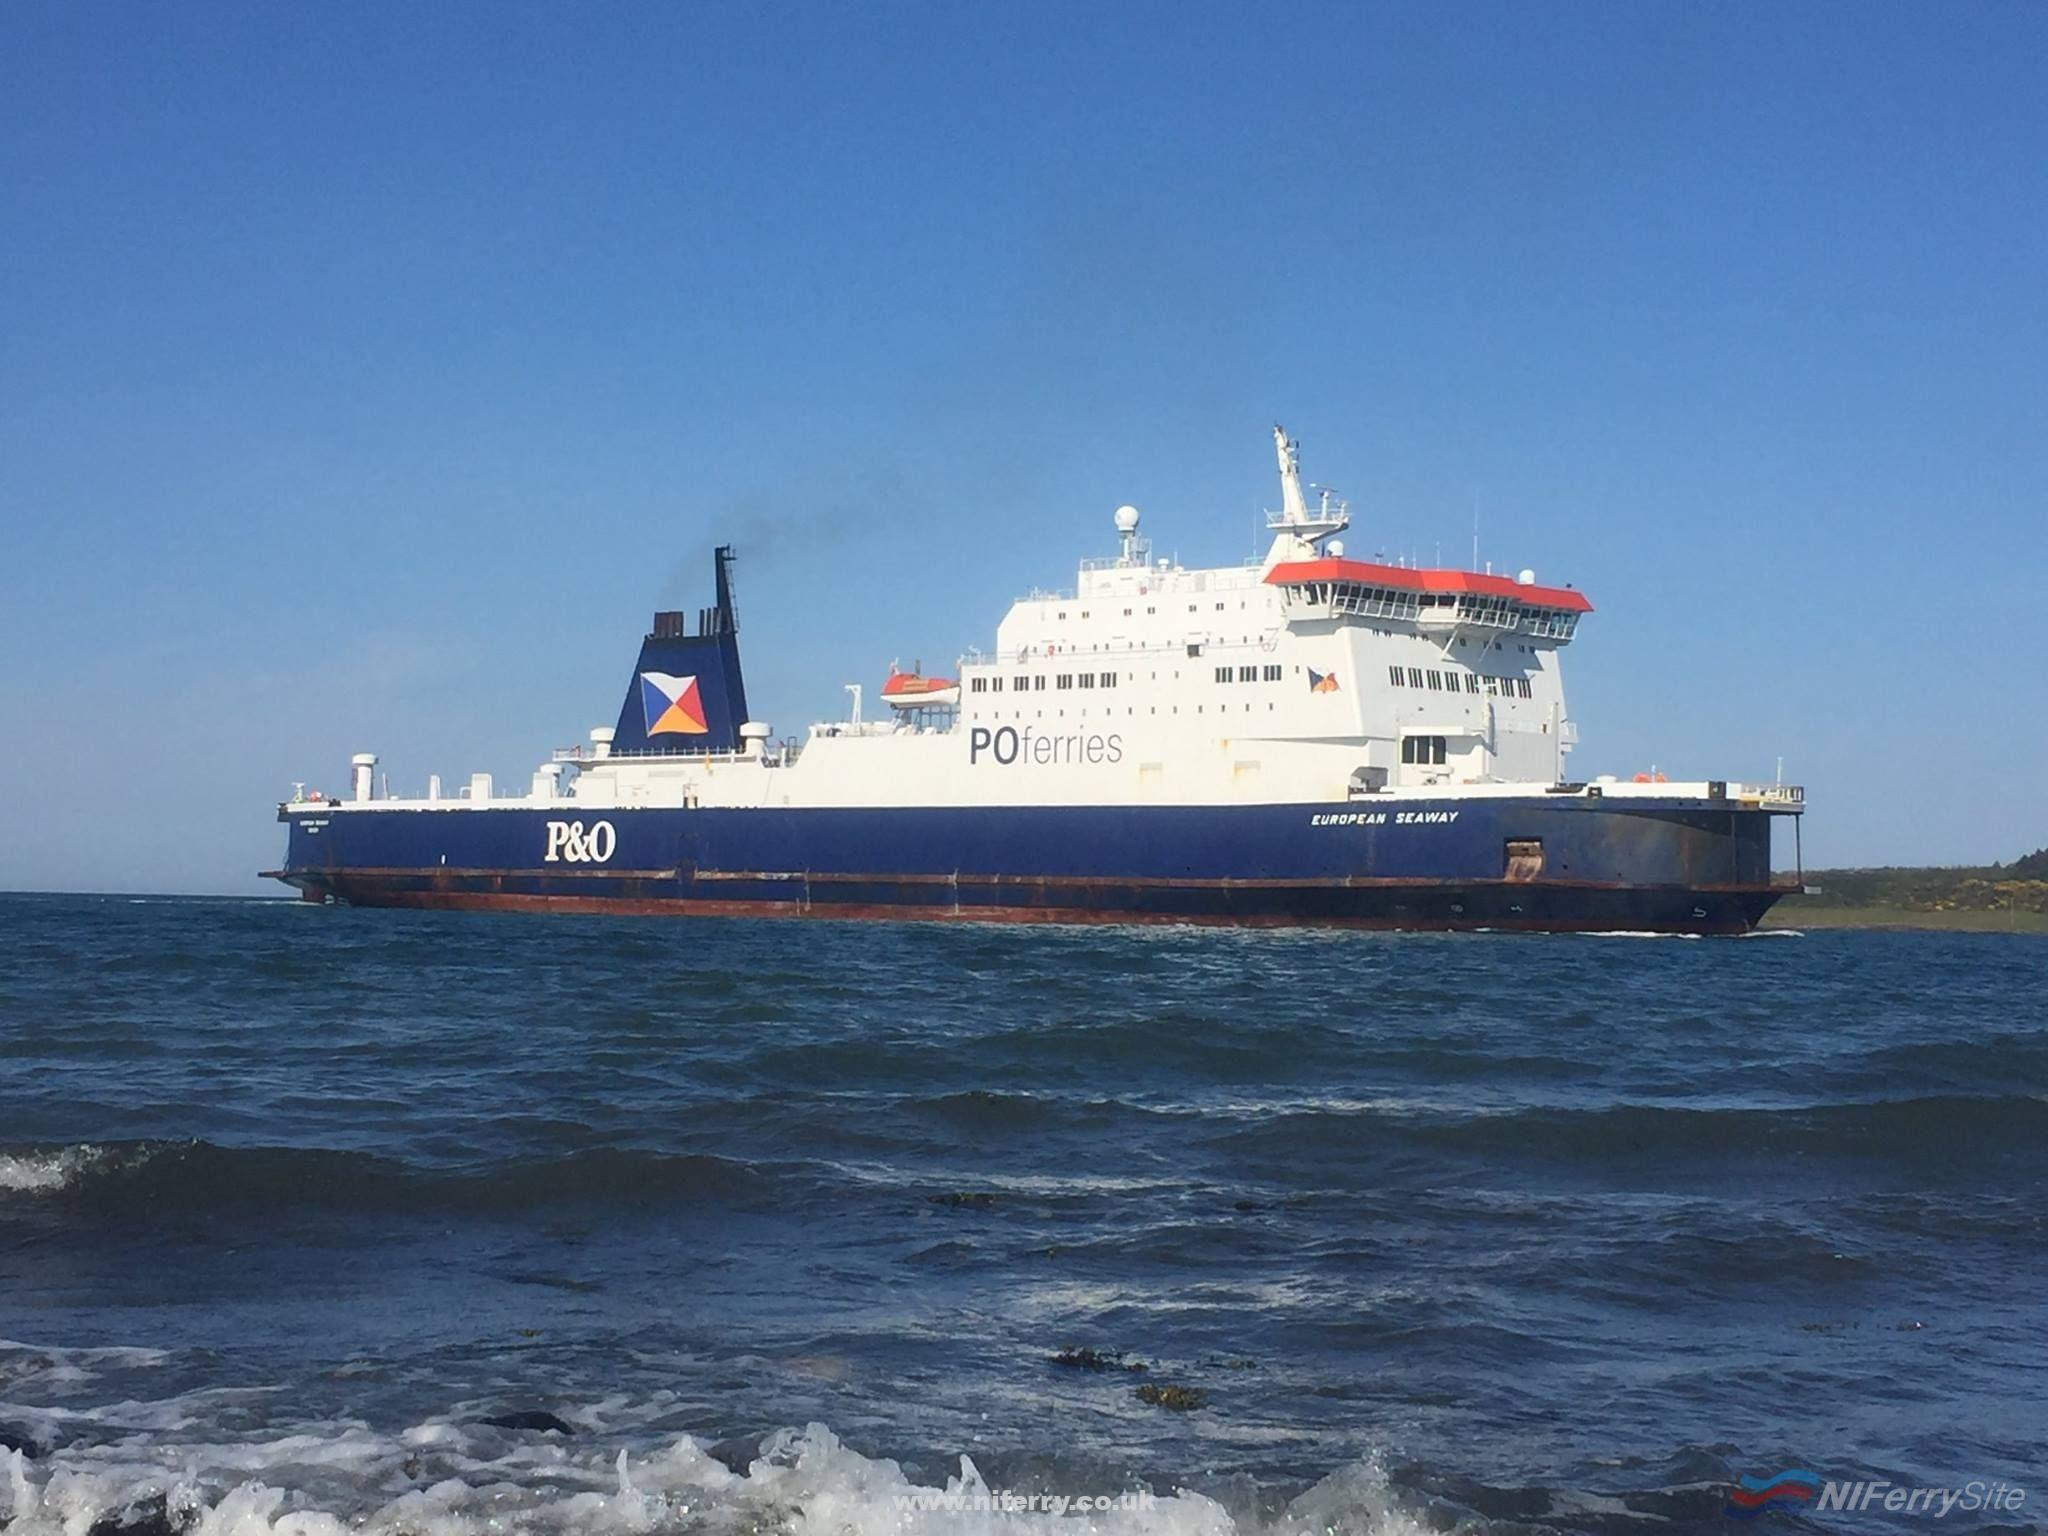 EUROPEAN SEAWAY arrives at Larne for the 3rd time on her first day for more berthing trials. Copyright © Gary Andrews.